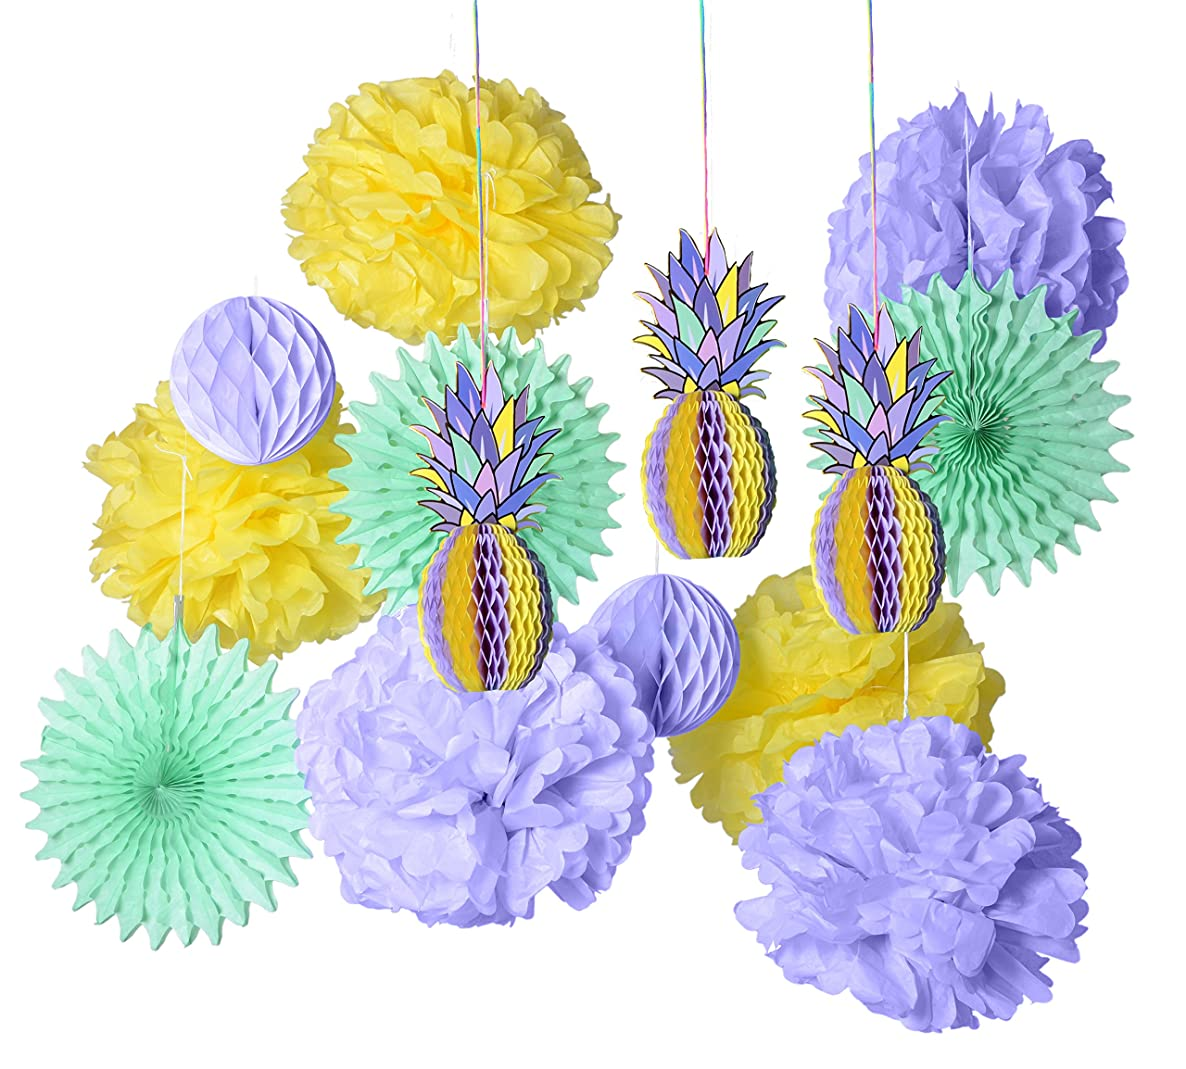 PAPER JAZZ multicolored paper honeycomb pineapple table centerpiece hanging decoration for summer Hawaiian laua tiki beach tropical fruit party (PURPLE SET)